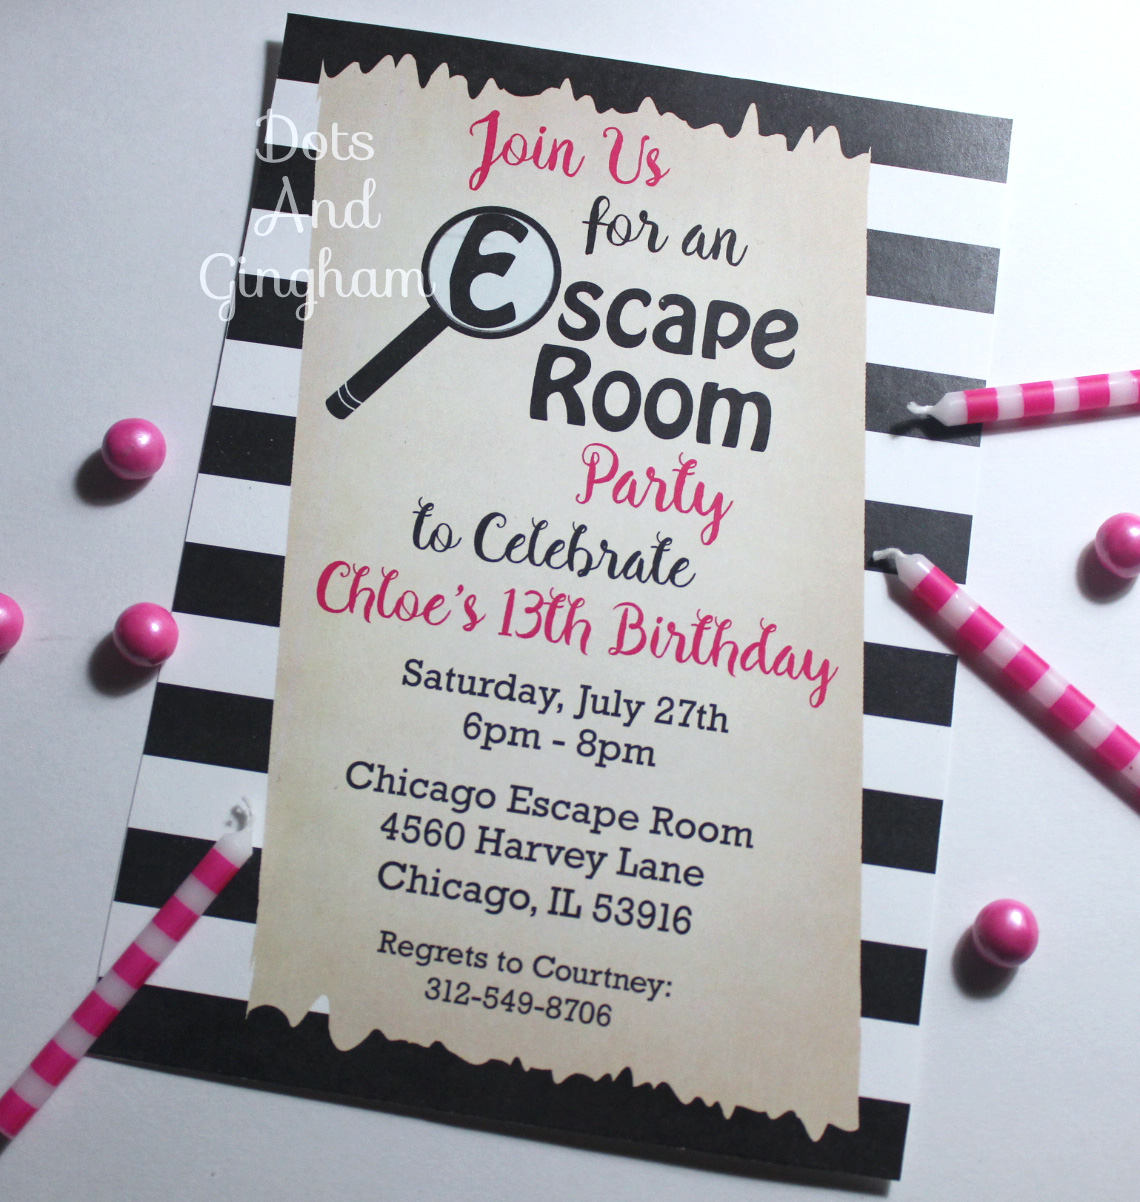 Escape Room Invitation Escape Room Party Scavenger Hunt